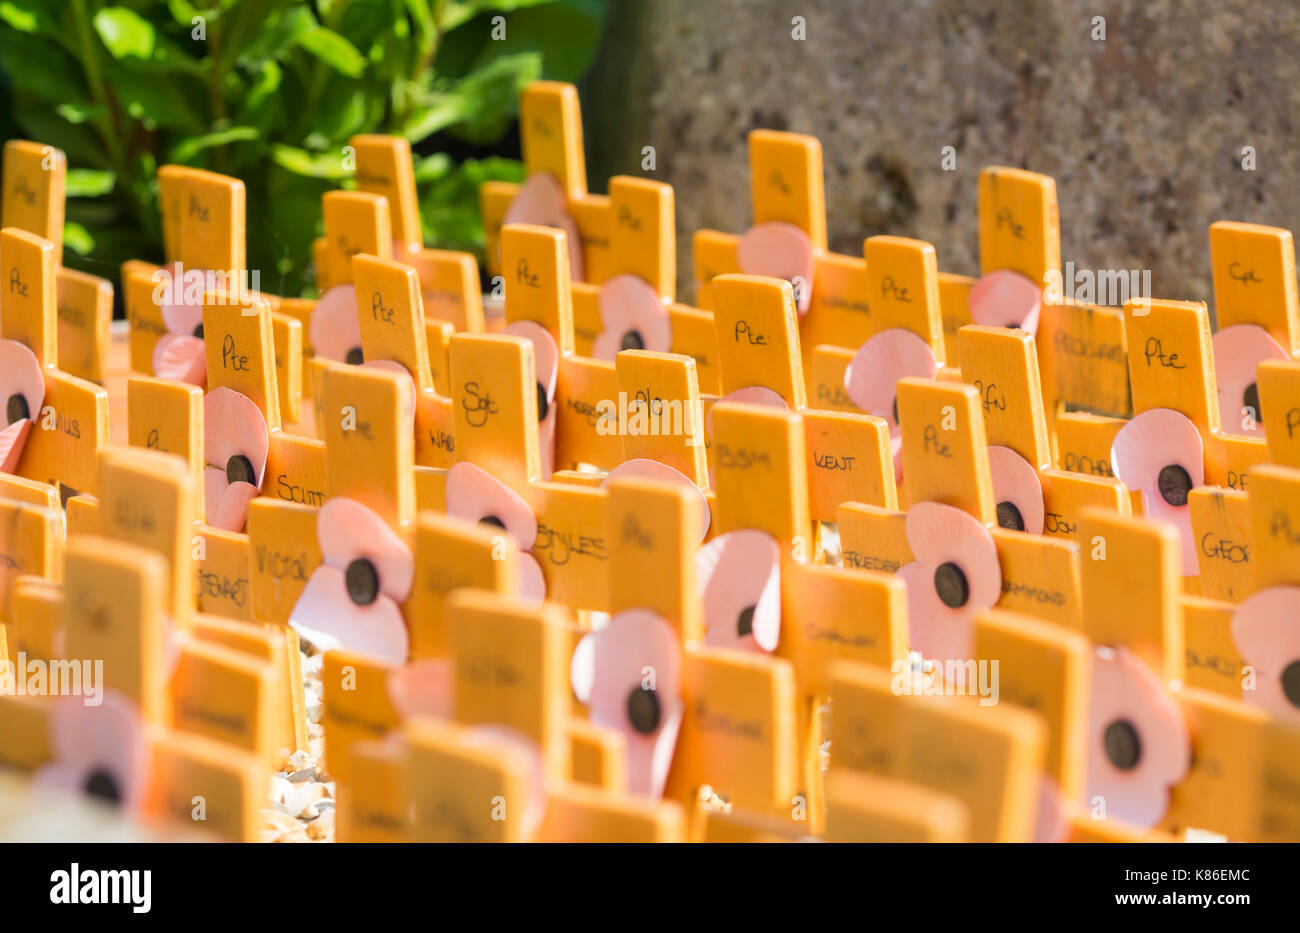 Crosses to represent those who died in war, byt the war memorial in Arundel, West Sussex, England, UK. - Stock Image